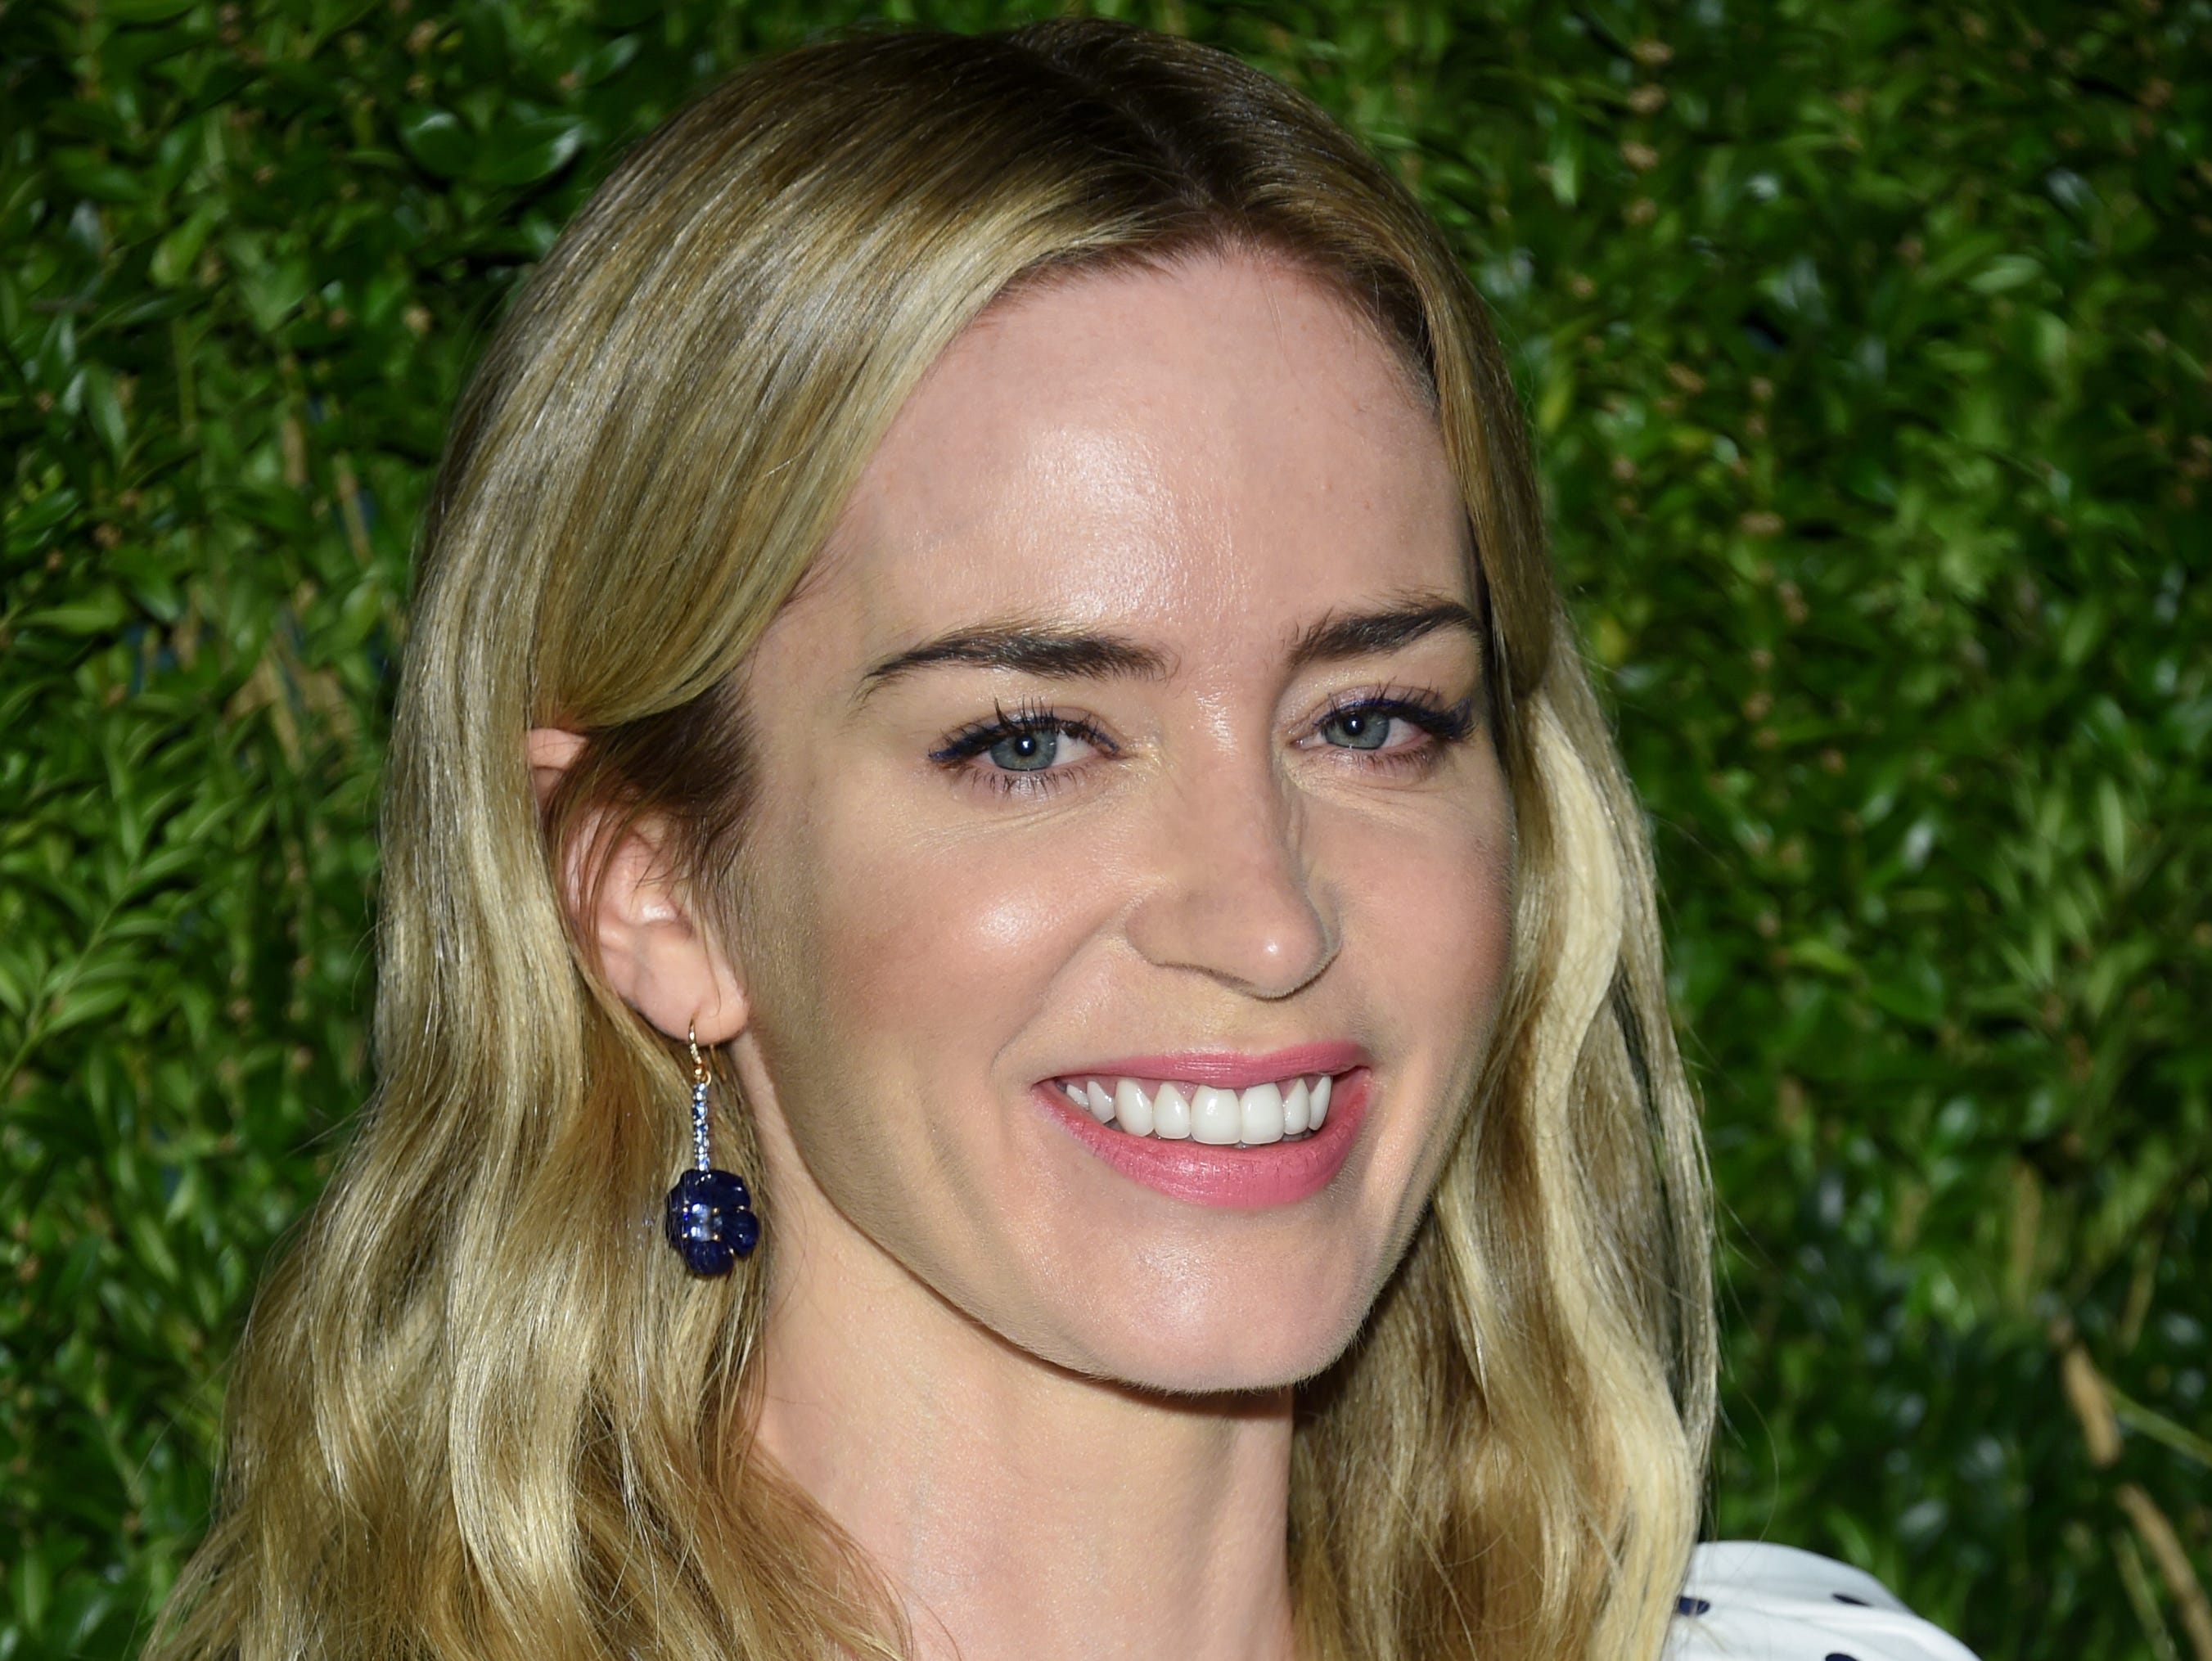 Actress Emily Blunt attends the 15th annual CFDA / Vogue Fashion Fund event at the Brooklyn Navy Yard on Monday, Nov. 5, 2018, in New York. (Photo by Evan Agostini/Invision/AP) ORG XMIT: NYEA126